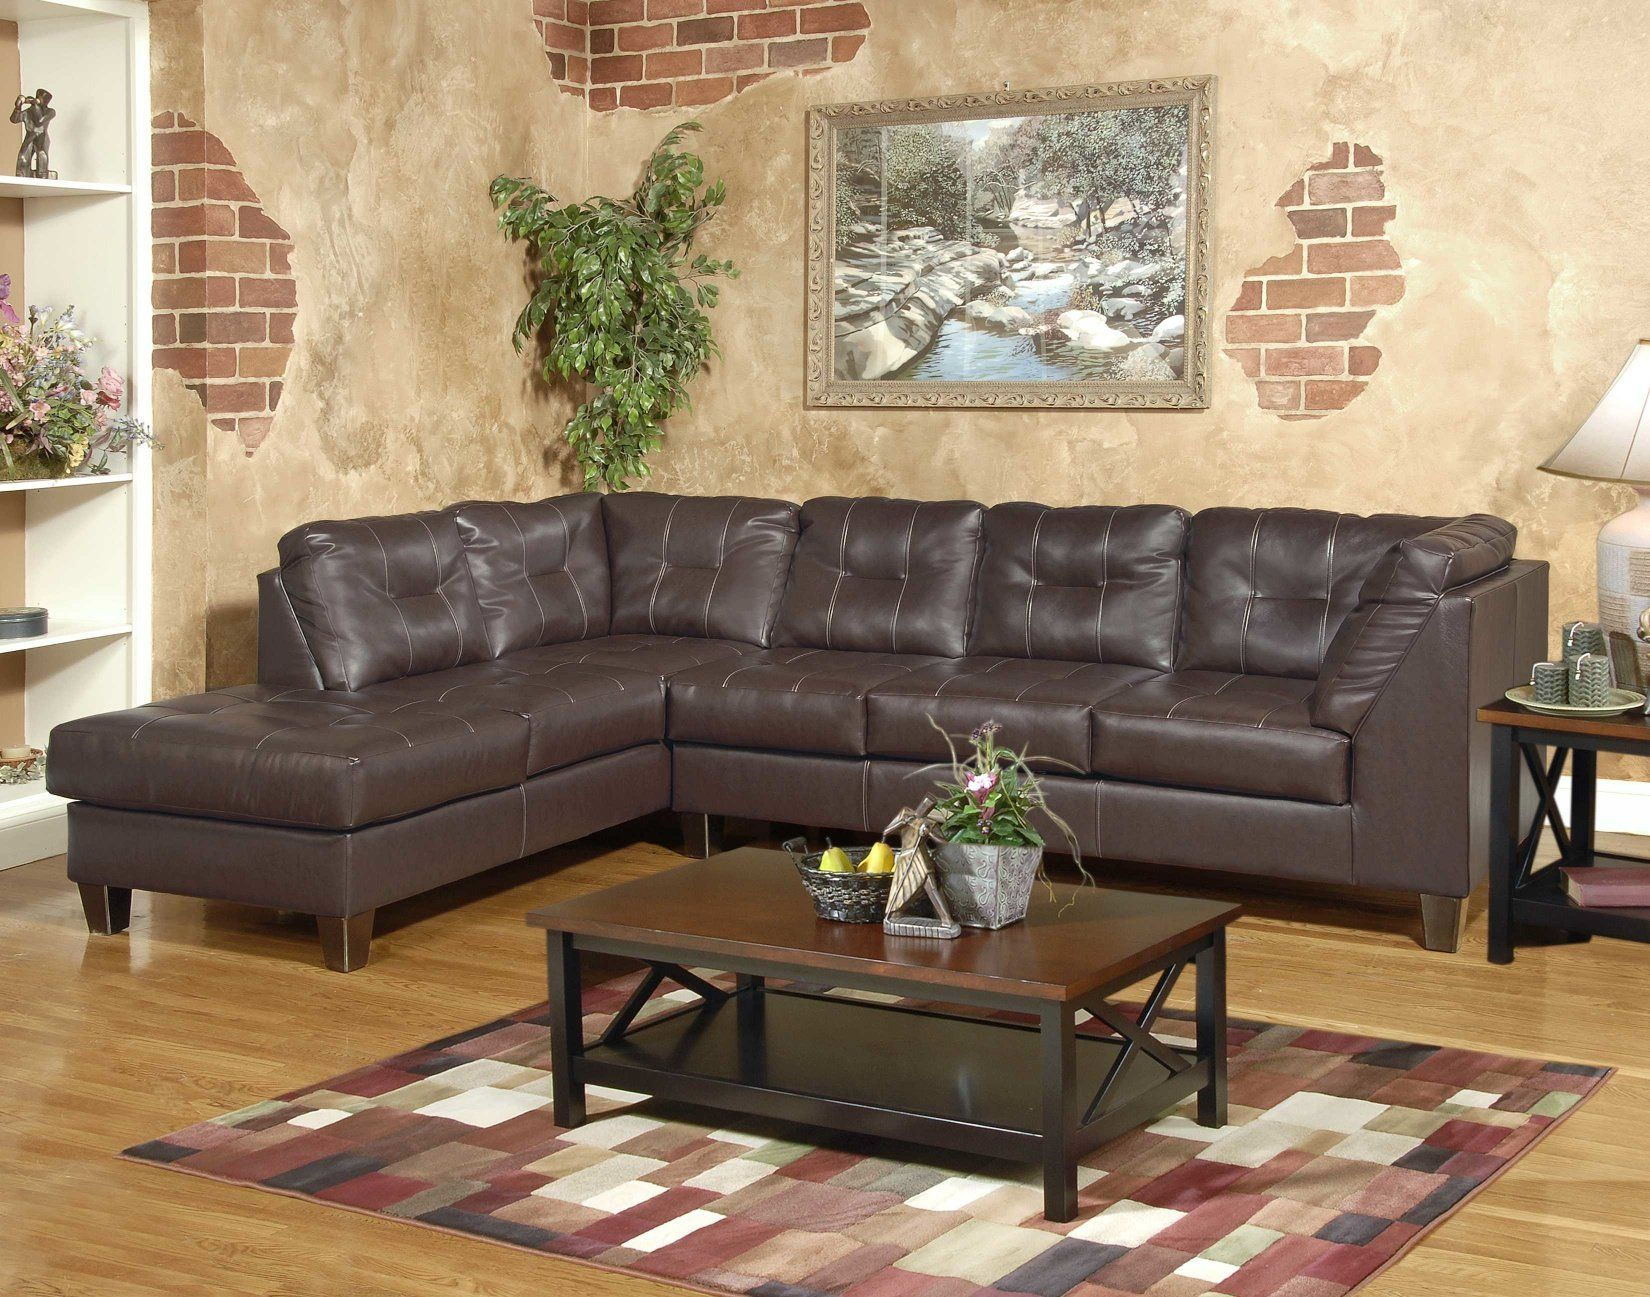 Roundhill Furniture Marinio Chocolate Faux Leather Left Chaise Sectional Sofa Sectional Sofa Sectional Sofas Living Room Sectional Sofa Couch